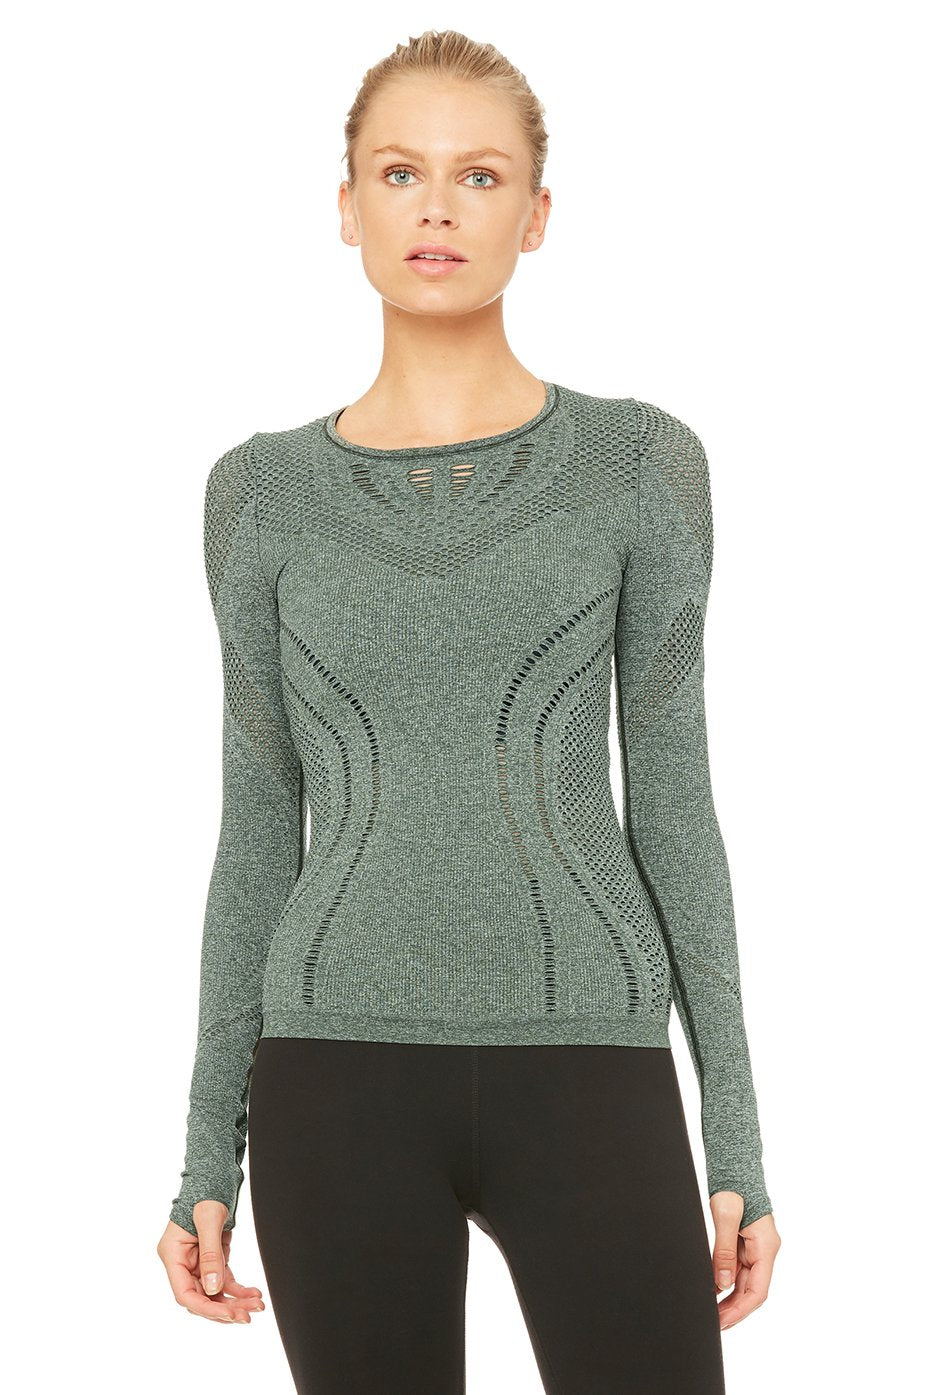 Alo Yoga Lark Long Sleeve Top - Hunter Heather